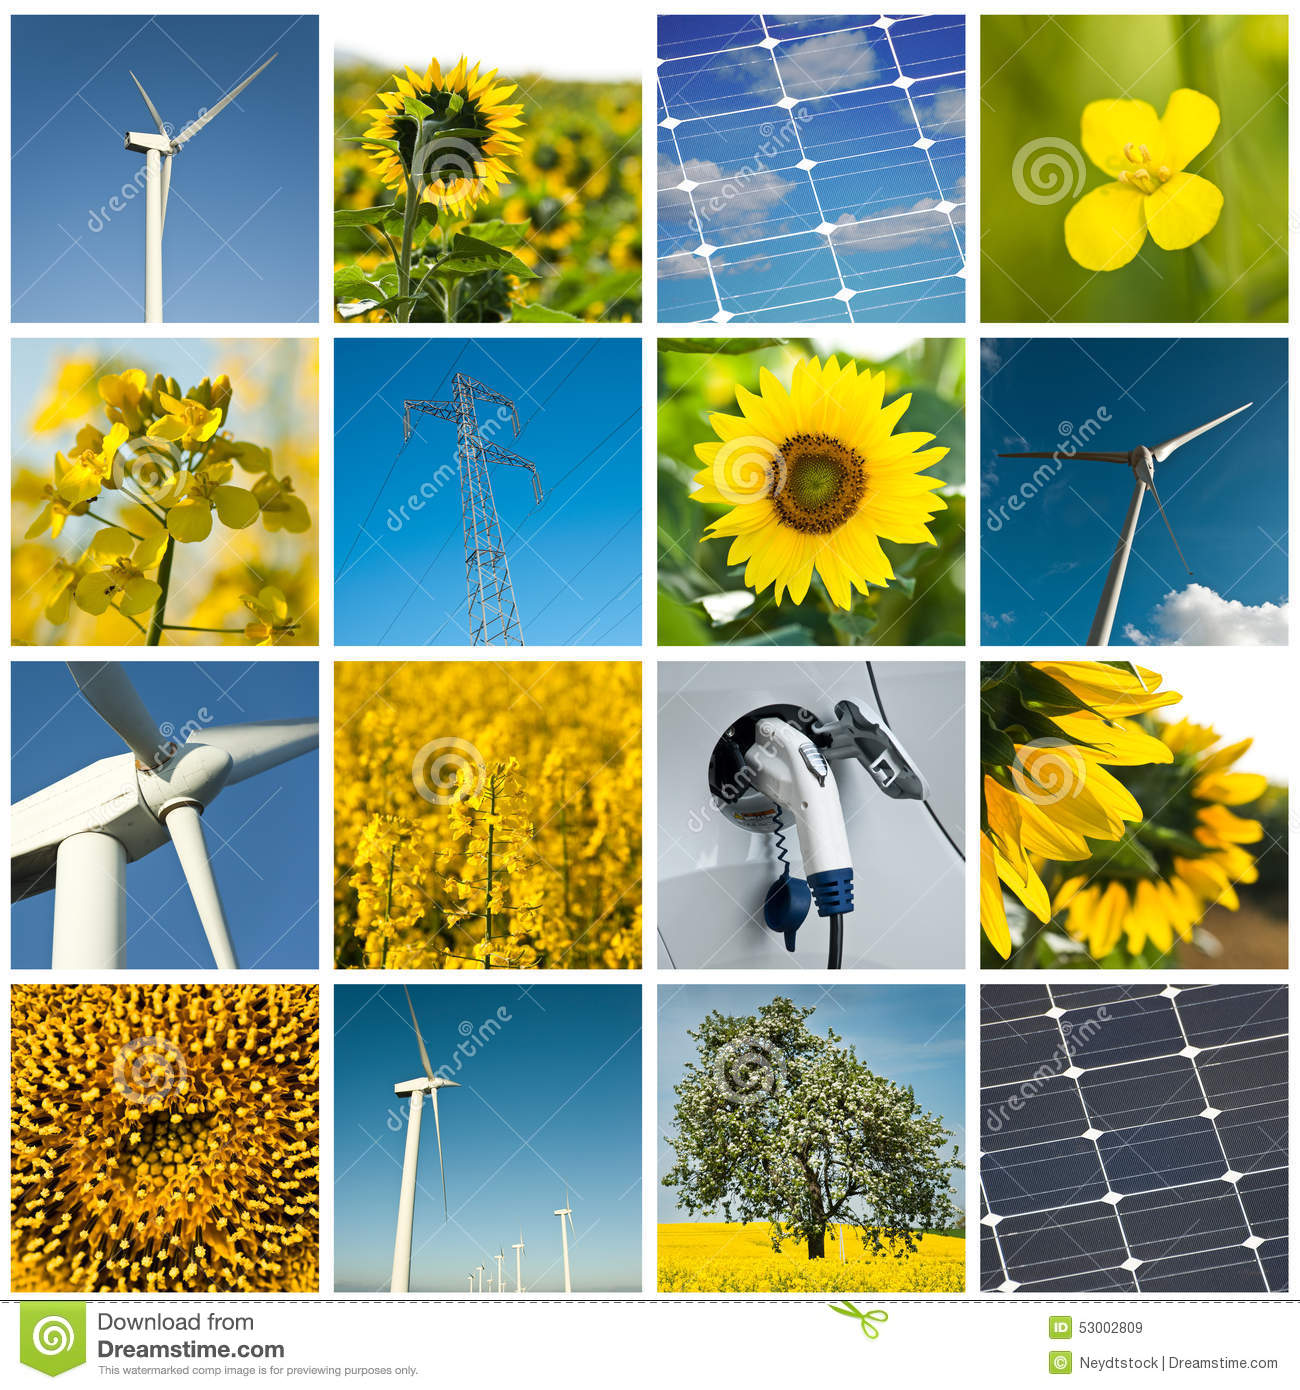 renewable energy and sustainable development Eventbrite - anastasiia domina presents renewable energy and sustainable development - monday, april 16, 2018 at liverpool, liverpool, england find event and ticket information.